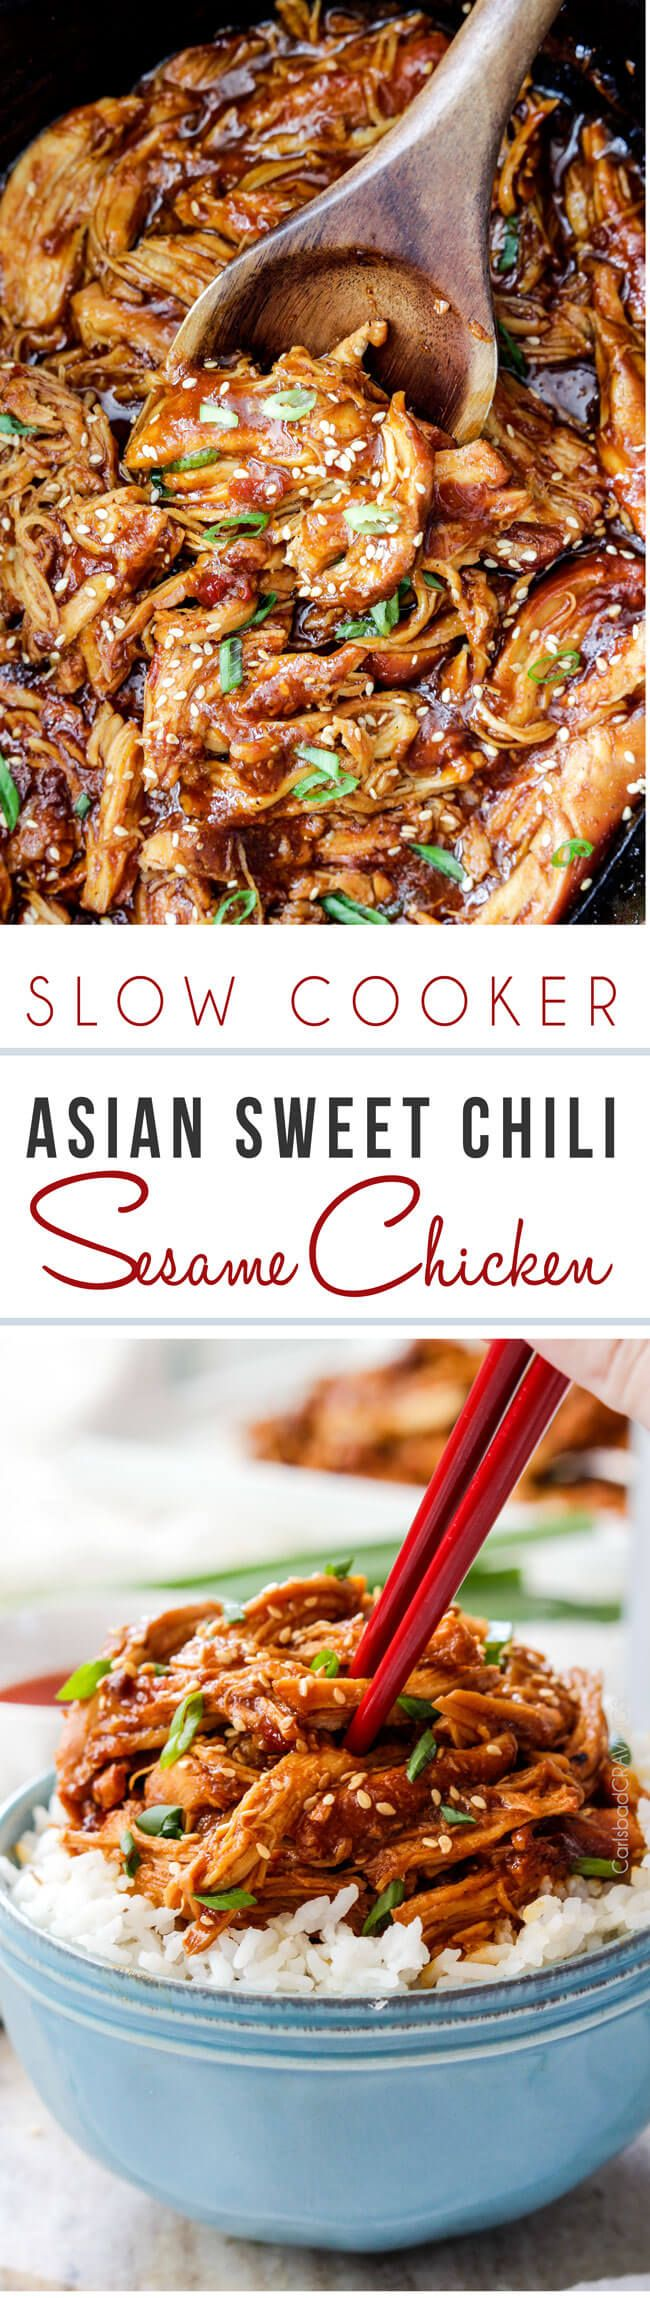 Slow Cooker Asian Sweet Chili Sesame Chicken knocks the socks off of traditional Sesame Chicken with the additional depth of sweet…